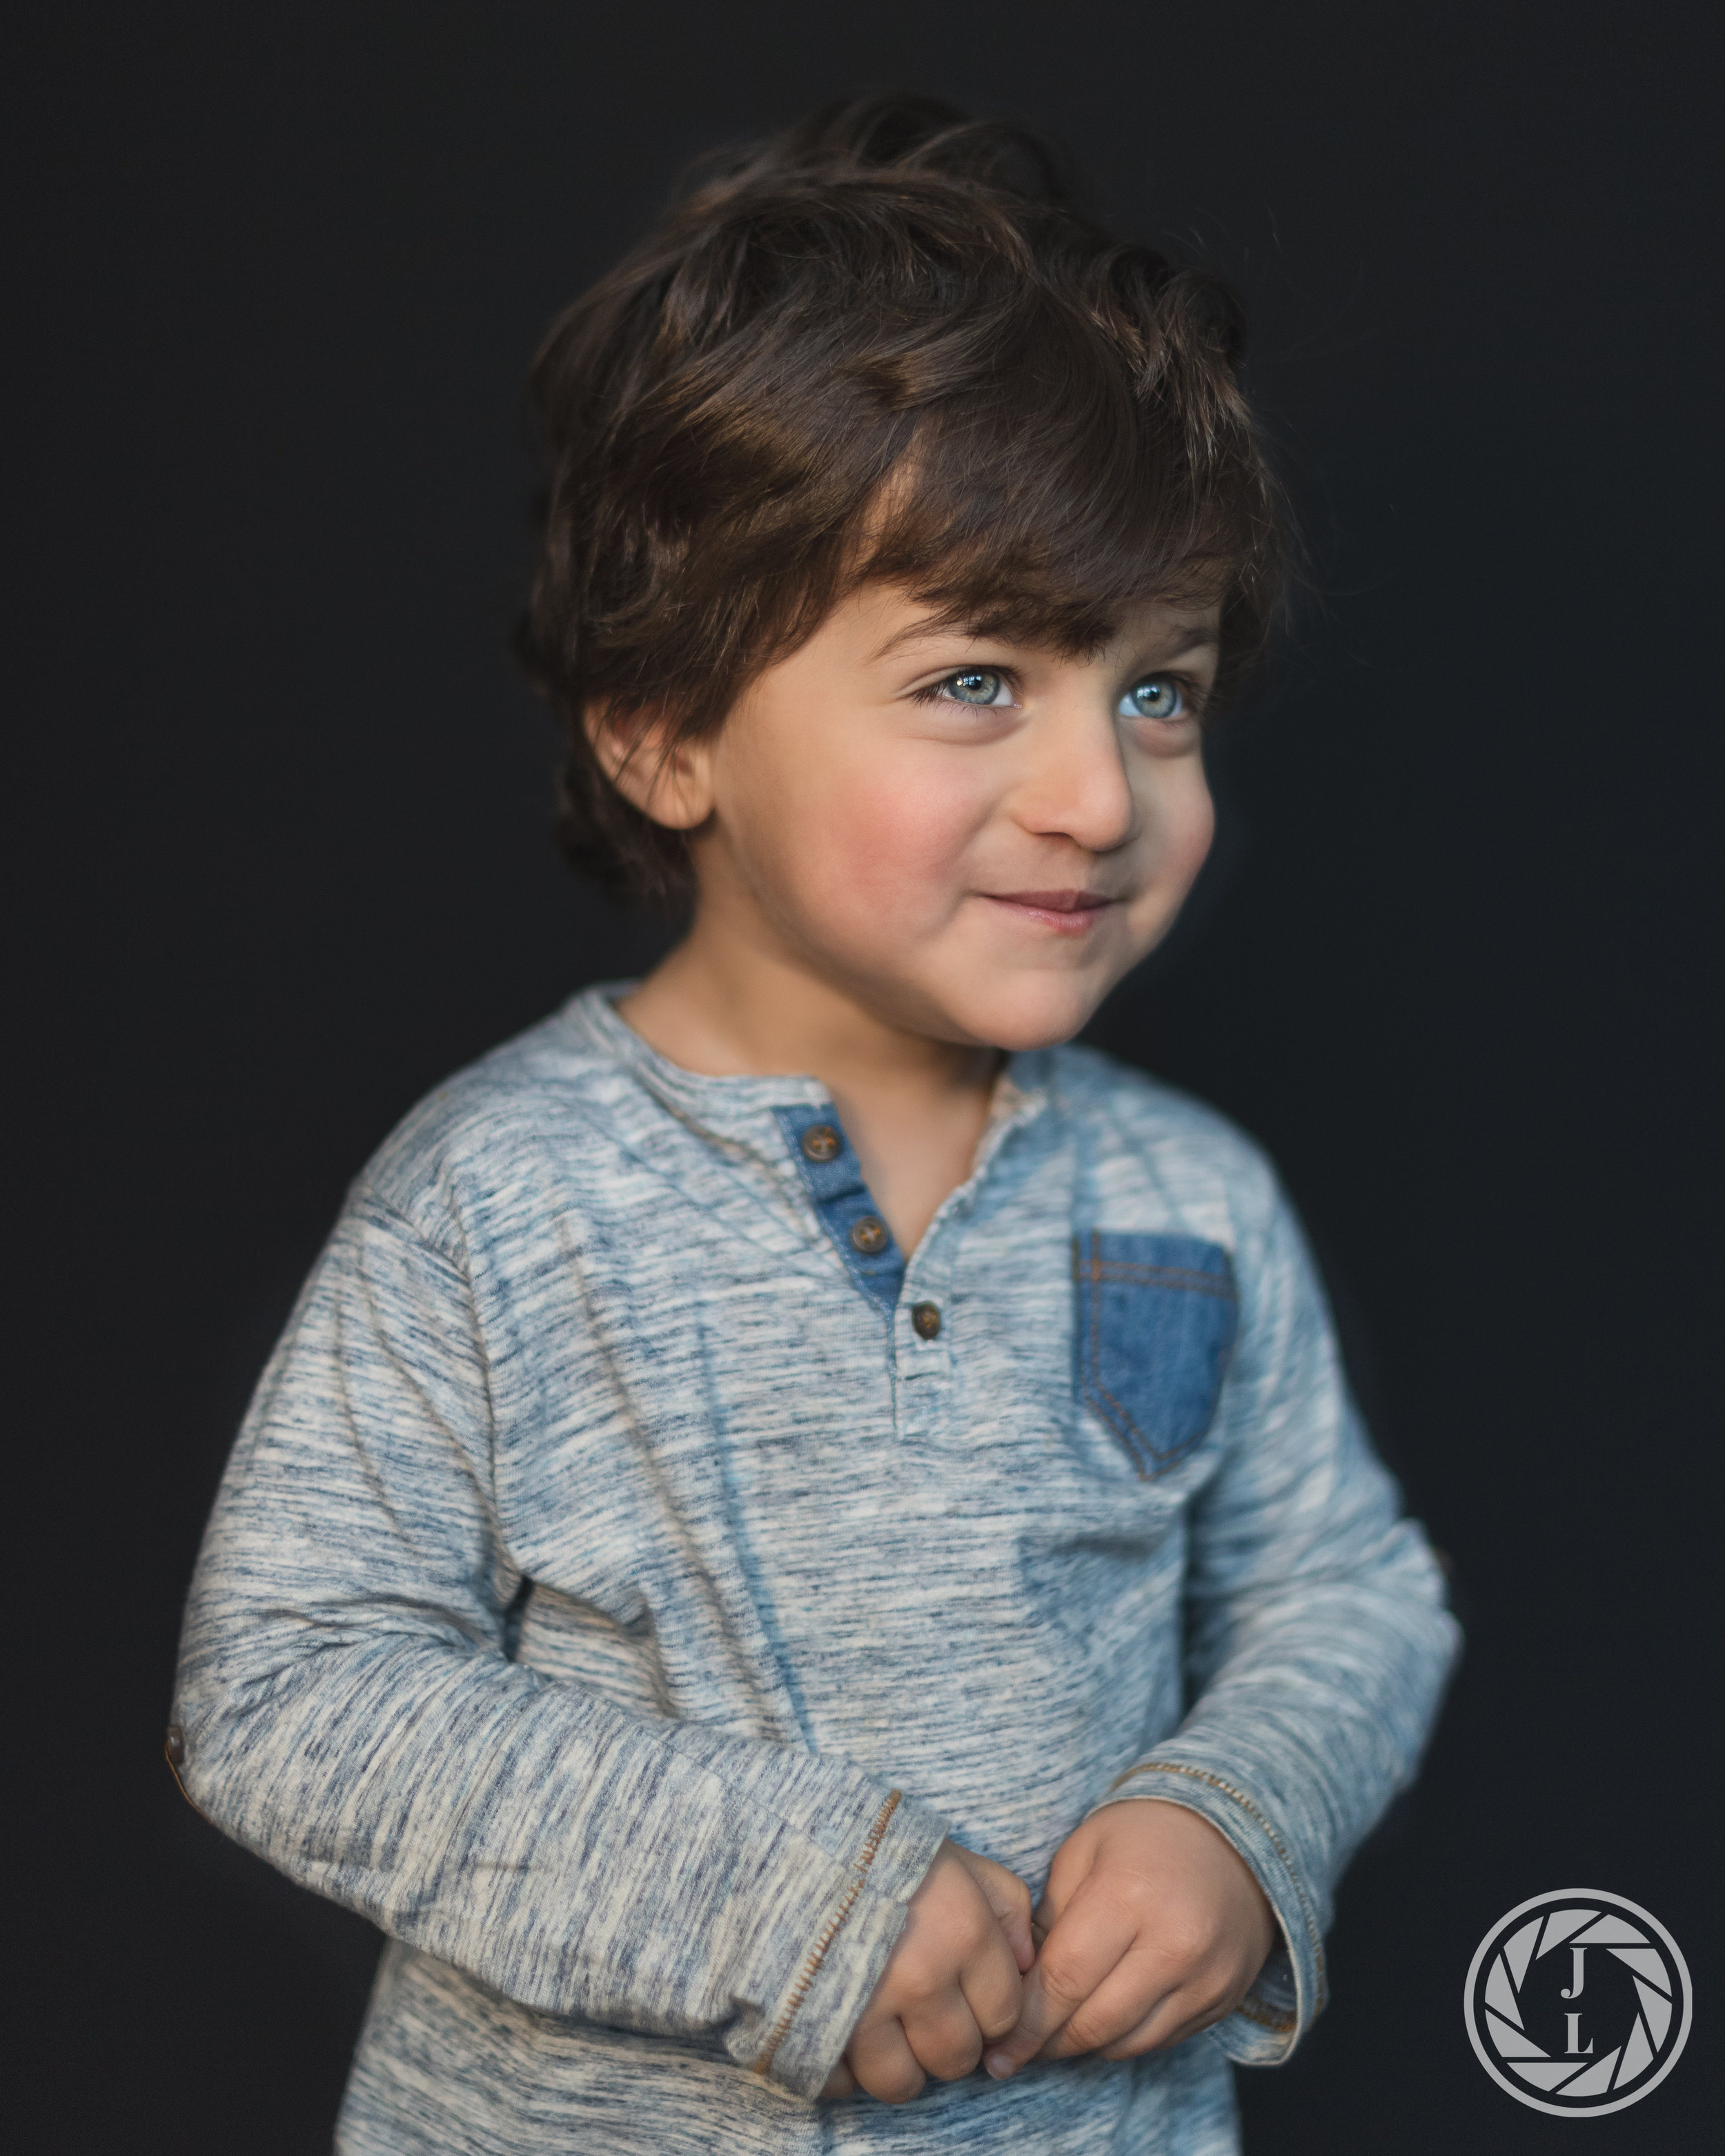 A young toddler with bright blue eyes starring off to the right of the camera with his hands held together.